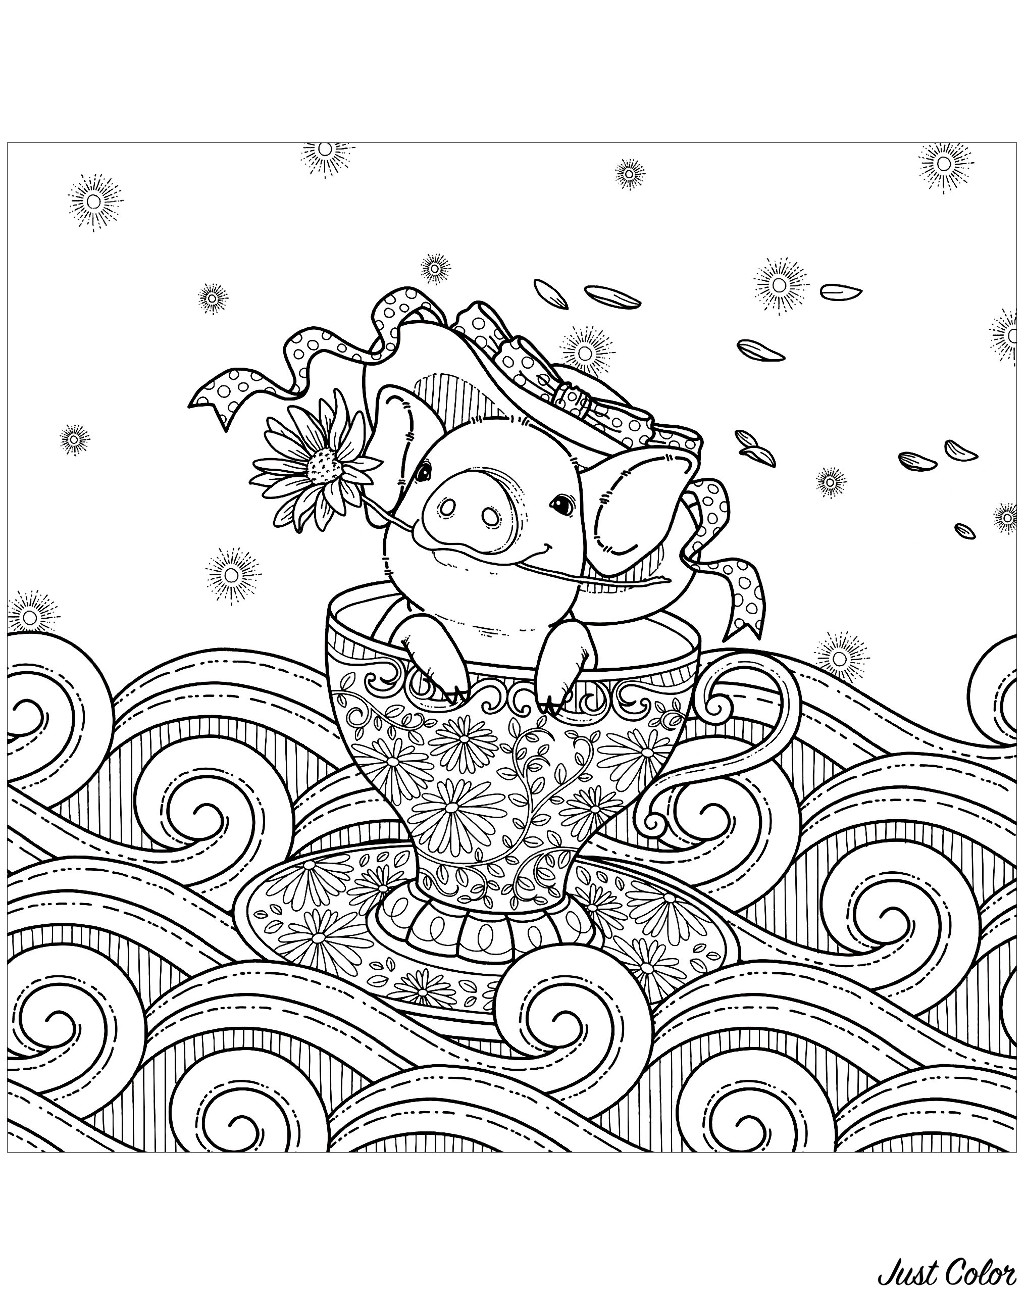 Pig In A Cup Pigs Adult Coloring Pages